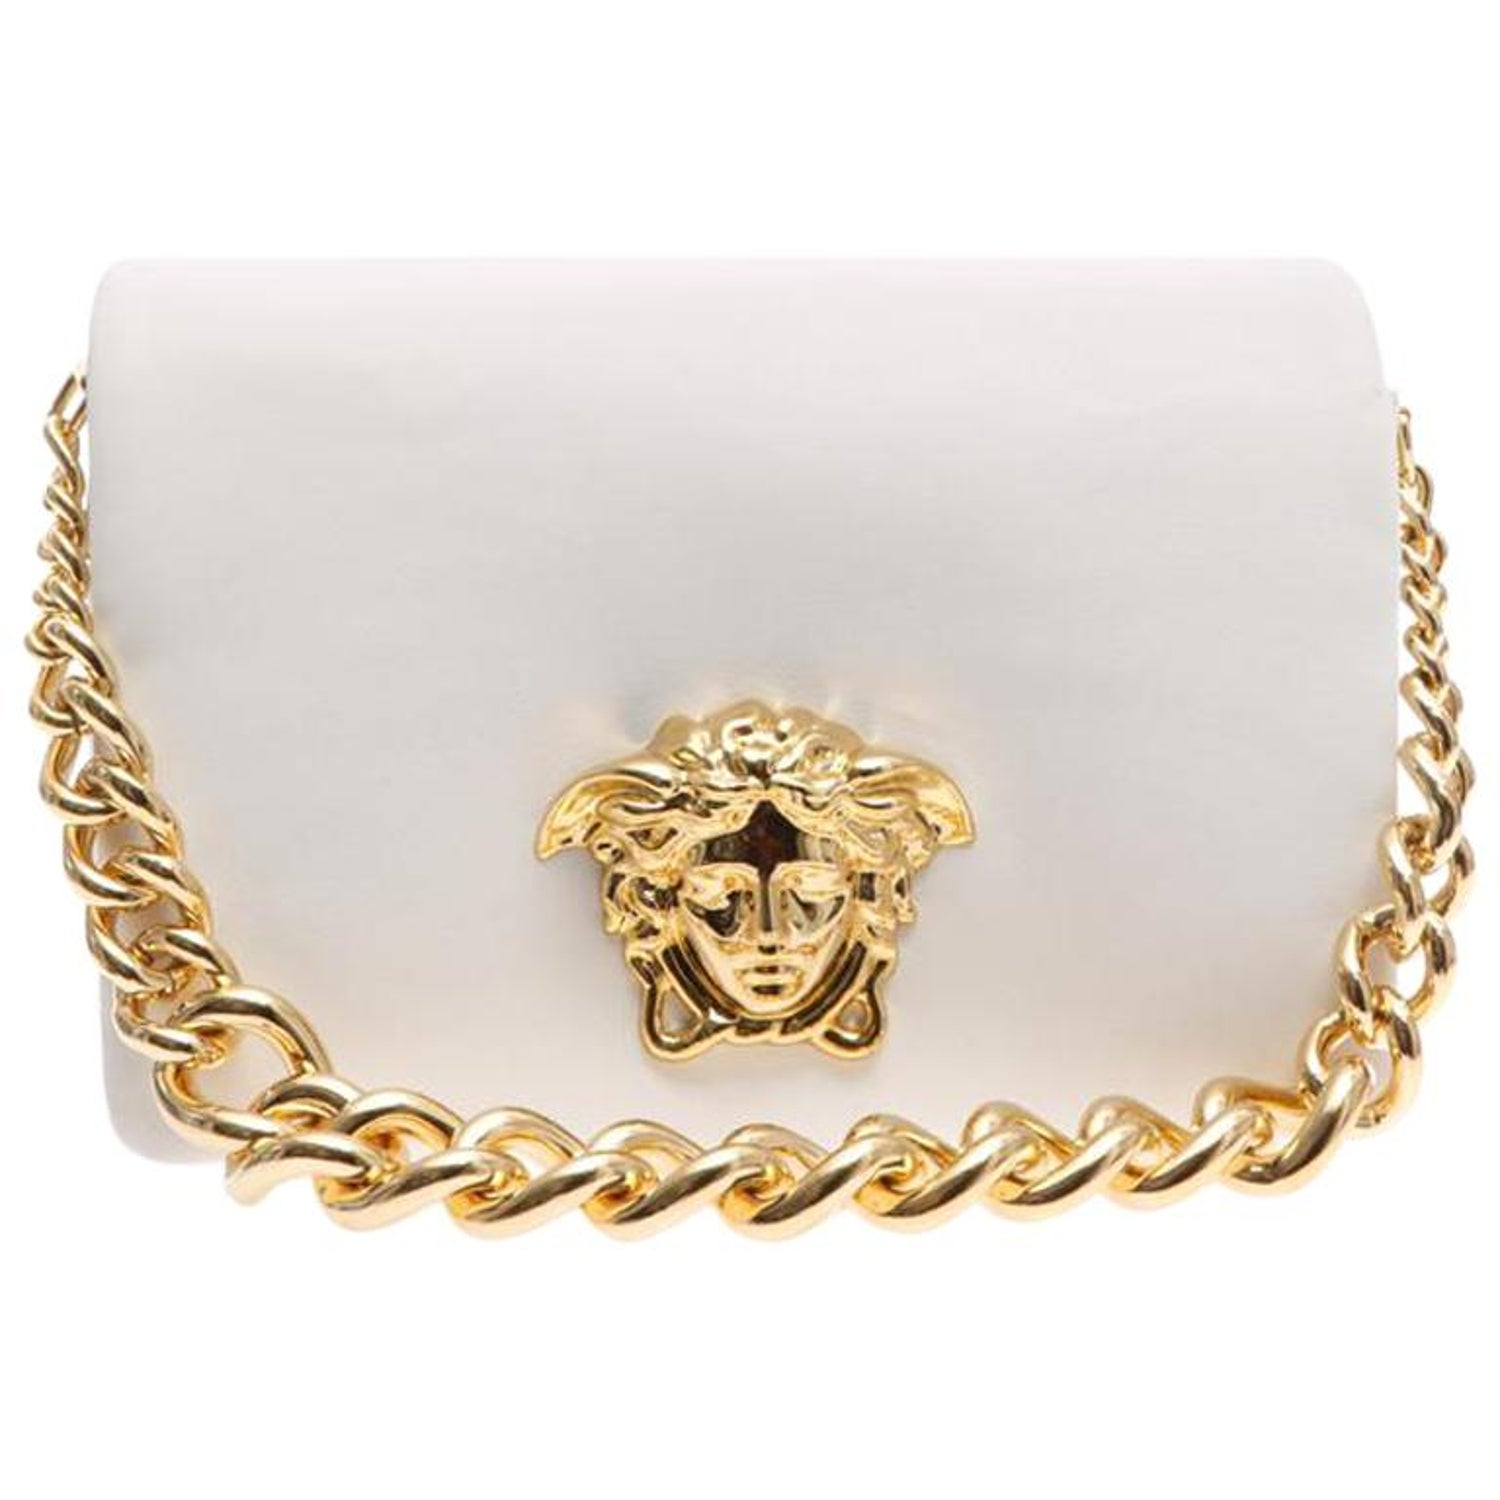 76de55b800a62 New VERSACE Palazzo Sultan white leather shoulder bag at 1stdibs